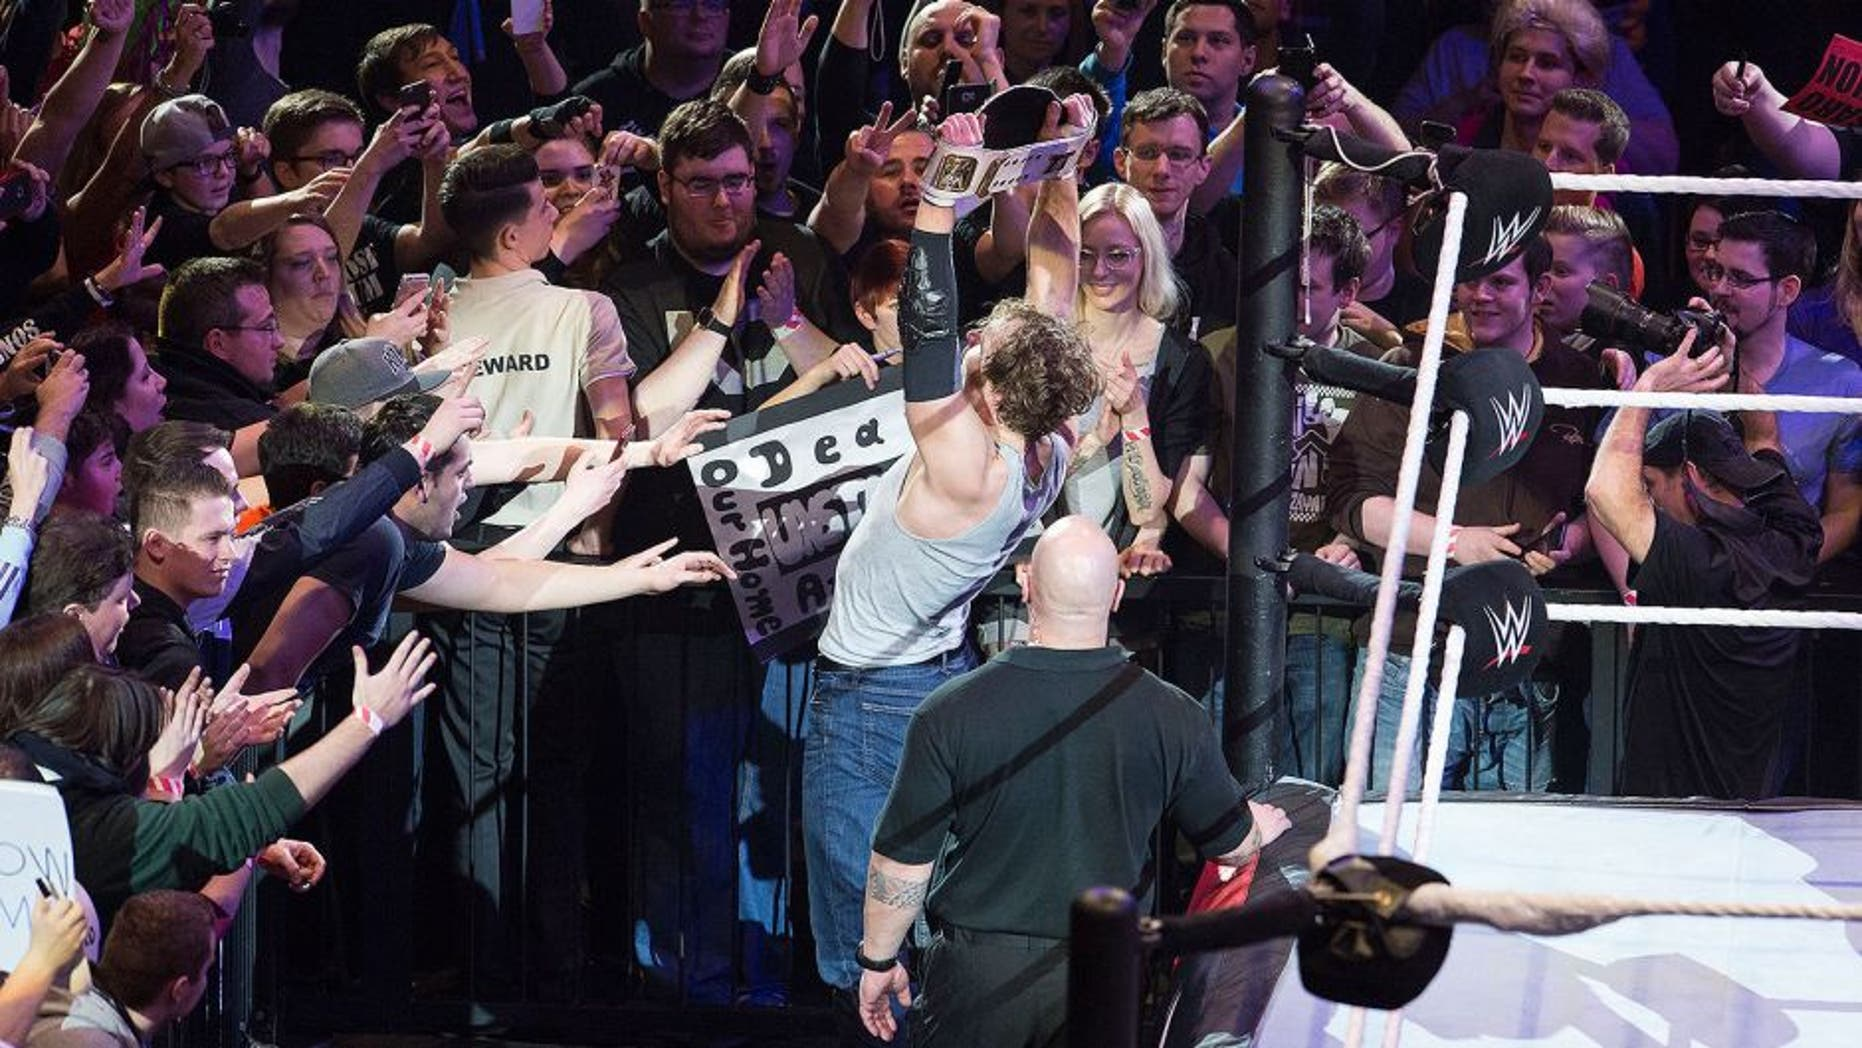 COLOGNE, GERMANY - FEBRUARY 11: Dean Ambrose during WWE Road to WrestleMania at the Lanxess Arena on February 11, 2016 in Cologne, Germany. (Photo by Marc Pfitzenreuter/Getty Images)